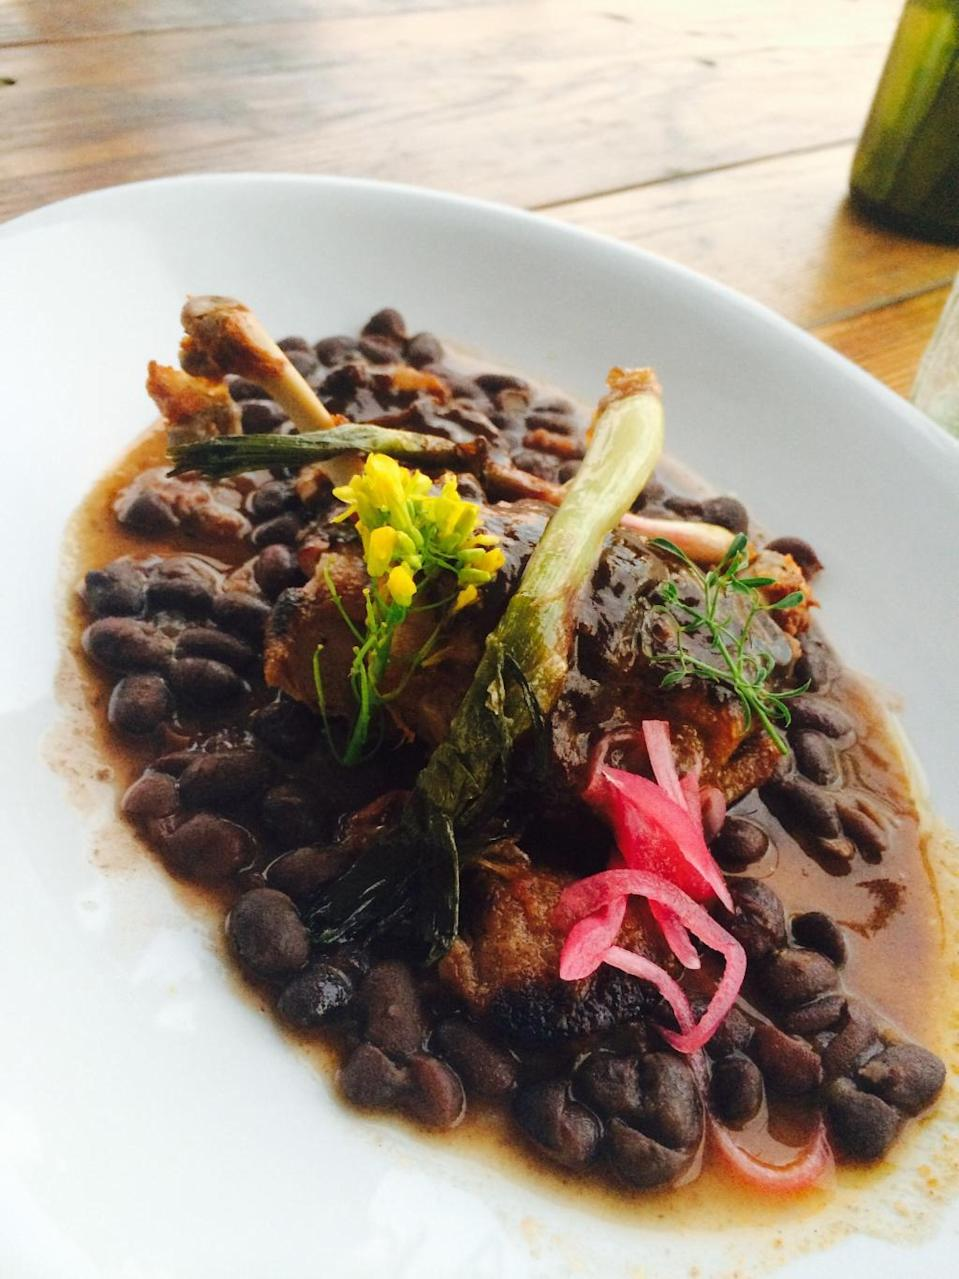 "<p>Javier Plascencia (of Tijuana's <a href=""http://www.thedailymeal.com/mision-19"" rel=""nofollow noopener"" target=""_blank"" data-ylk=""slk:Misión 19"" class=""link rapid-noclick-resp""><strong>Misión 19</strong></a> and <a href=""http://www.thedailymeal.com/travel/25-best-restaurants-mexico-slideshow-0/slide-2"" rel=""nofollow noopener"" target=""_blank"" data-ylk=""slk:Caesar's"" class=""link rapid-noclick-resp""><strong>Caesar's</strong></a>, and San Diego's <a href=""http://romescomexmed.com/"" rel=""nofollow noopener"" target=""_blank"" data-ylk=""slk:Romesco"" class=""link rapid-noclick-resp""><strong>Romesco</strong></a>, among other restaurants) is at the helm of <a href=""http://fincaltozano.com/"" rel=""nofollow noopener"" target=""_blank"" data-ylk=""slk:Altozano"" class=""link rapid-noclick-resp""><strong>Altozano</strong></a>, a rustic, open-air restaurant located right on the chef's own ranch and vineyard. Before (or after) dining, guests can roam around the property and enjoy glasses of wine while sitting atop giant oak barrels or on an elevated seating area that offers breathtaking views of the surroundings. The ambiance is so enchanting that you might forget that food is the whole reason you're there. Not for long though, as the fare will soon become front-and-center with offerings like an octopus appetizer, a <a href=""http://www.thedailymeal.com/recipes/birria-goat-or-lamb-sauce-recipe"" rel=""nofollow noopener"" target=""_blank"" data-ylk=""slk:lamb birria"" class=""link rapid-noclick-resp""><strong>lamb birria</strong></a> main (and Mexican standards like tacos, burritos, and tostadas that are anything <em>but </em>standard), and an assortment of pastas and steak.</p>"